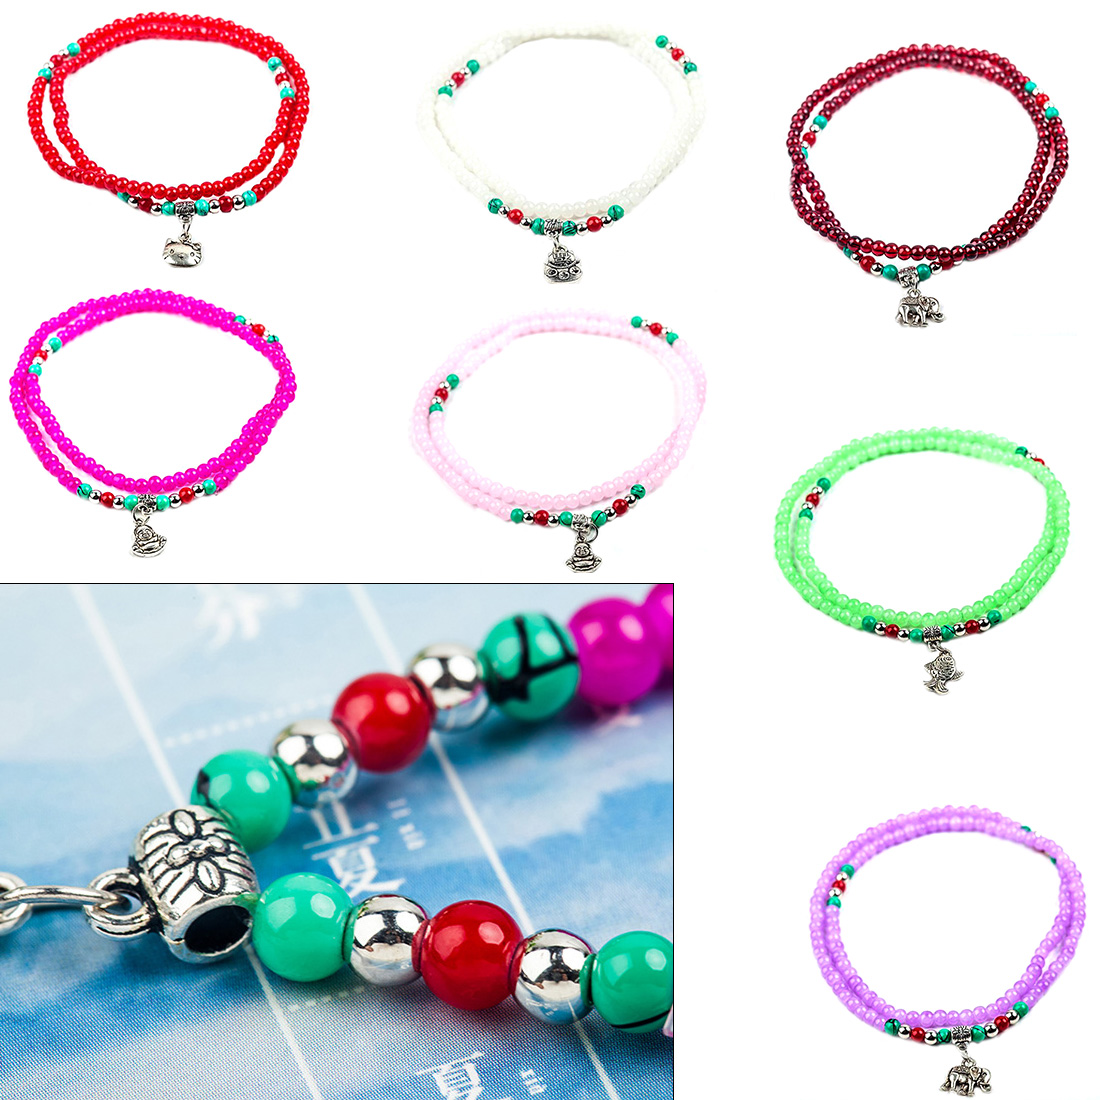 Women Bracelets Hot Sale Crystal Multilayer Bracelets Colorful Beads Bracelets 9Colors Available Fashion Jewelry Bracelets